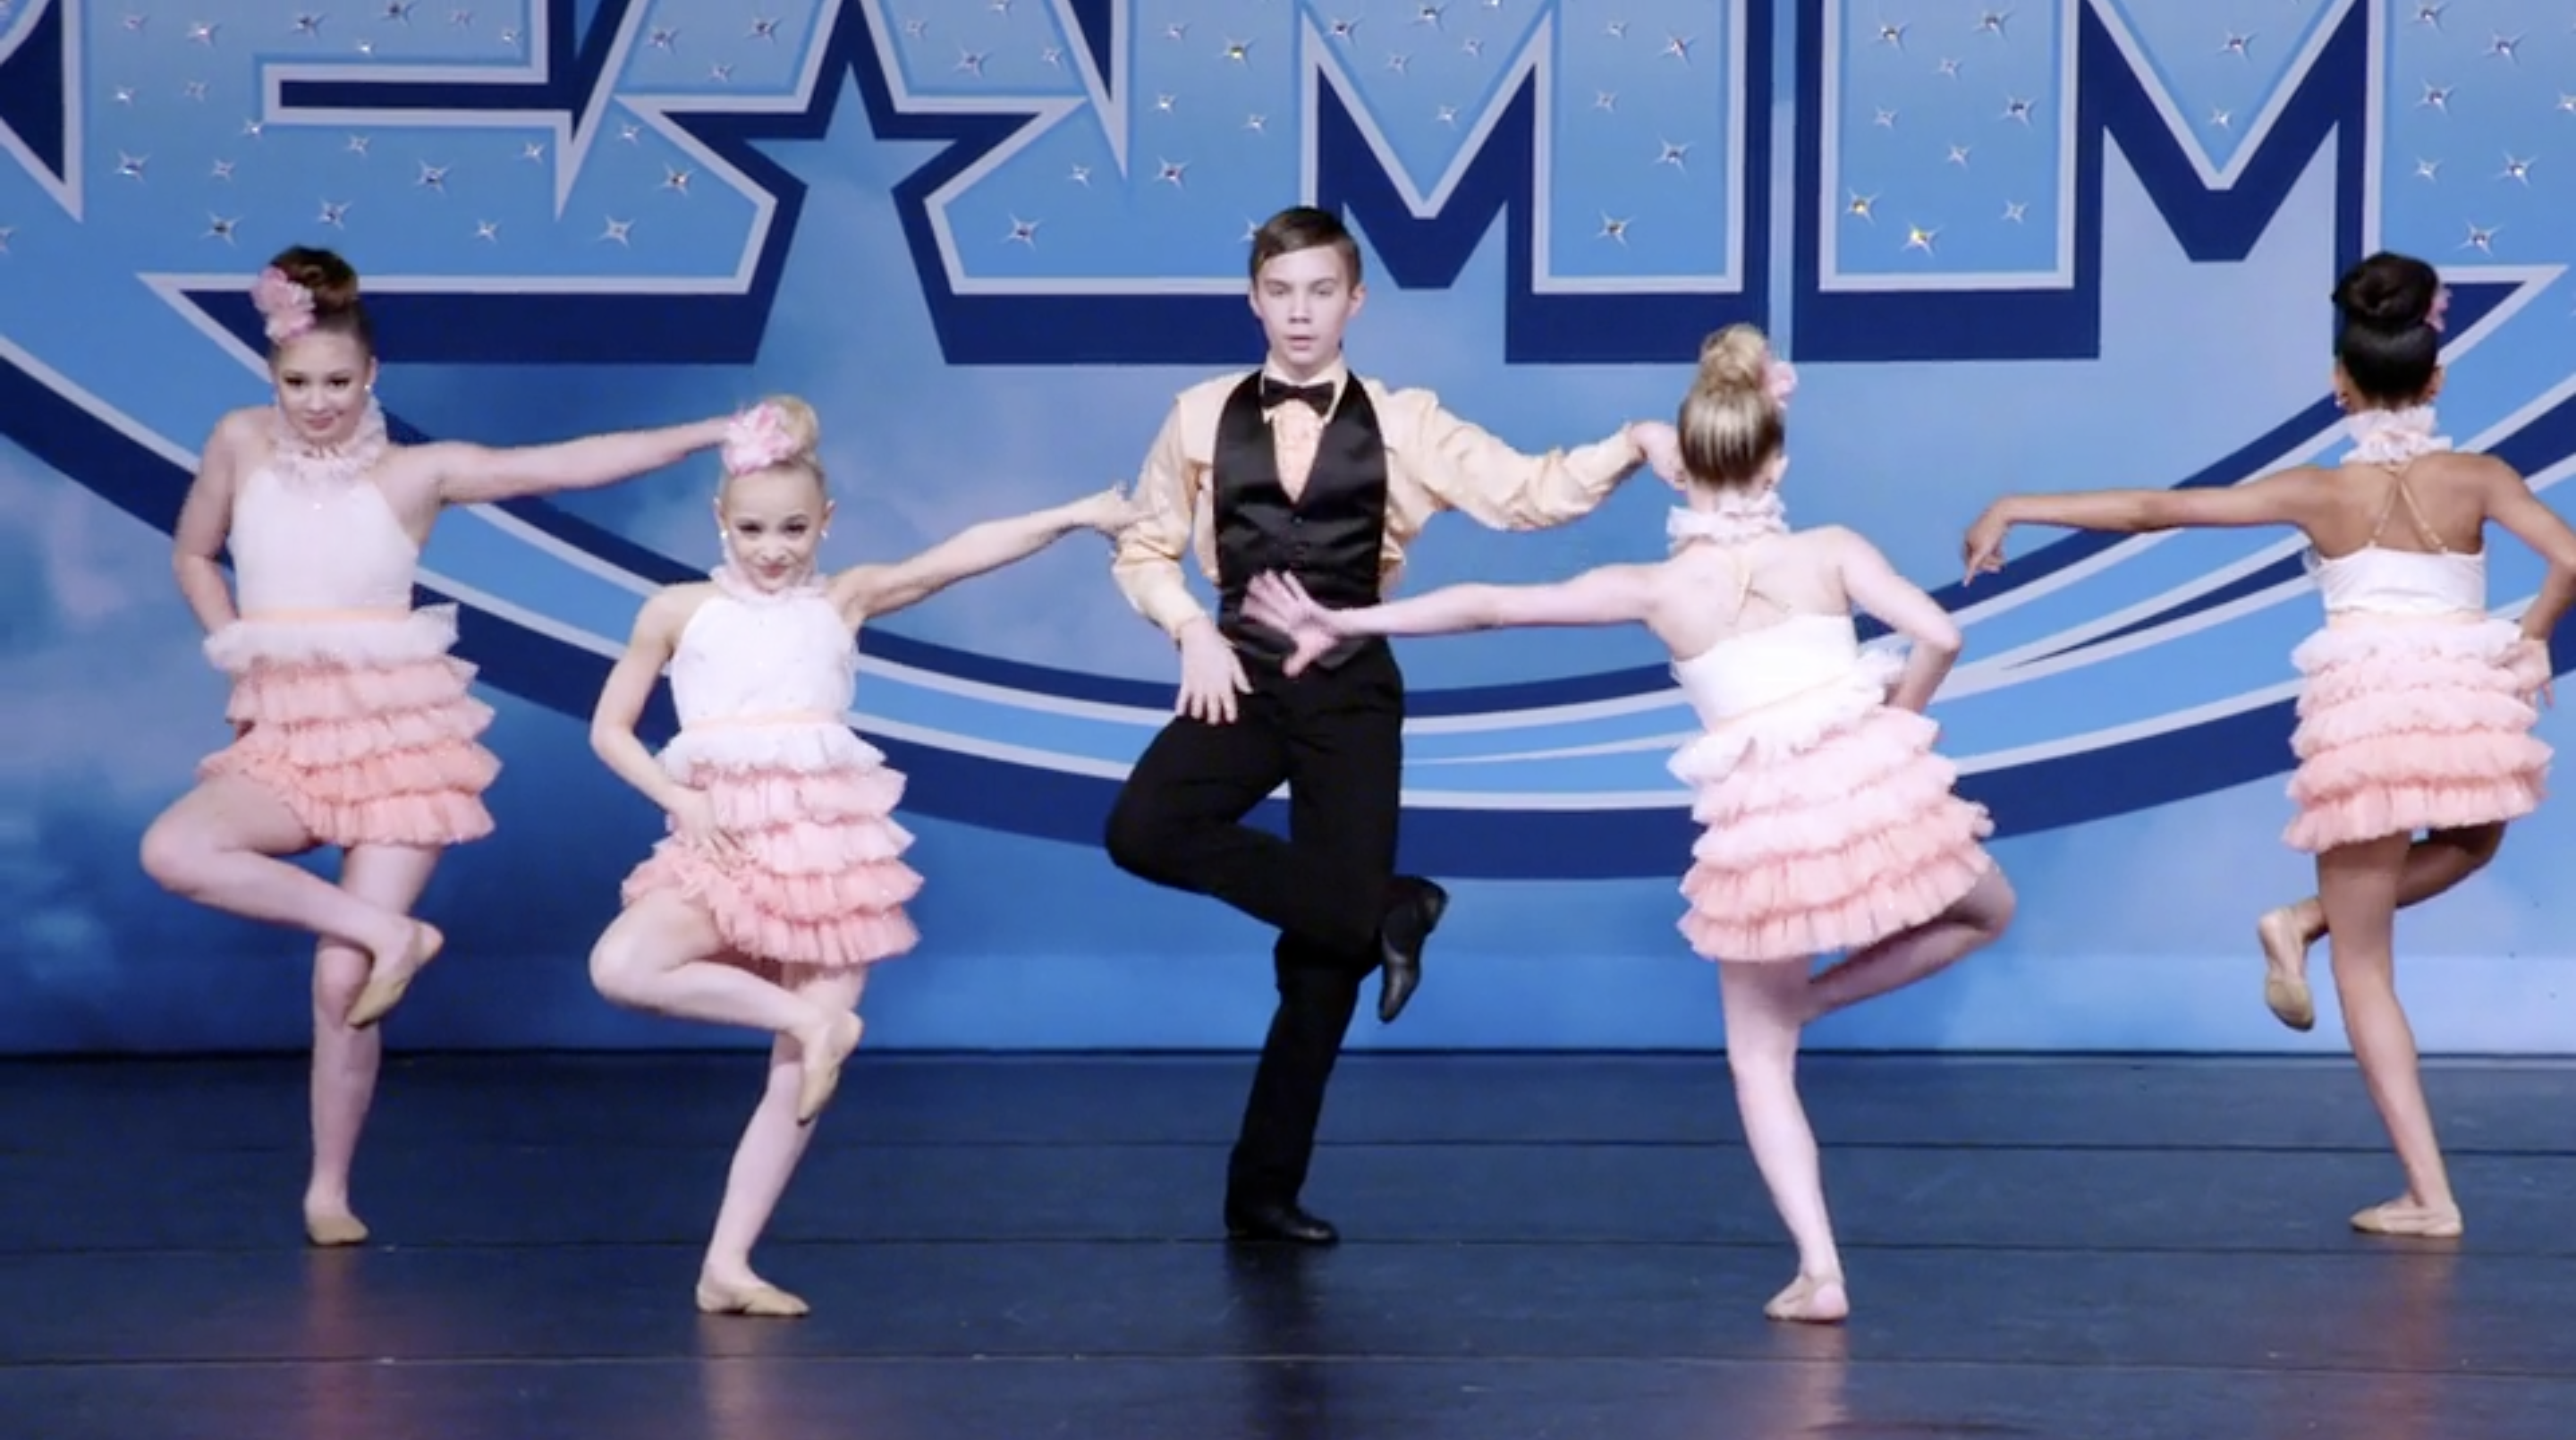 'Dance Moms' Did A Bob Fosse-Inspired Performance & It's So Cool To Watch